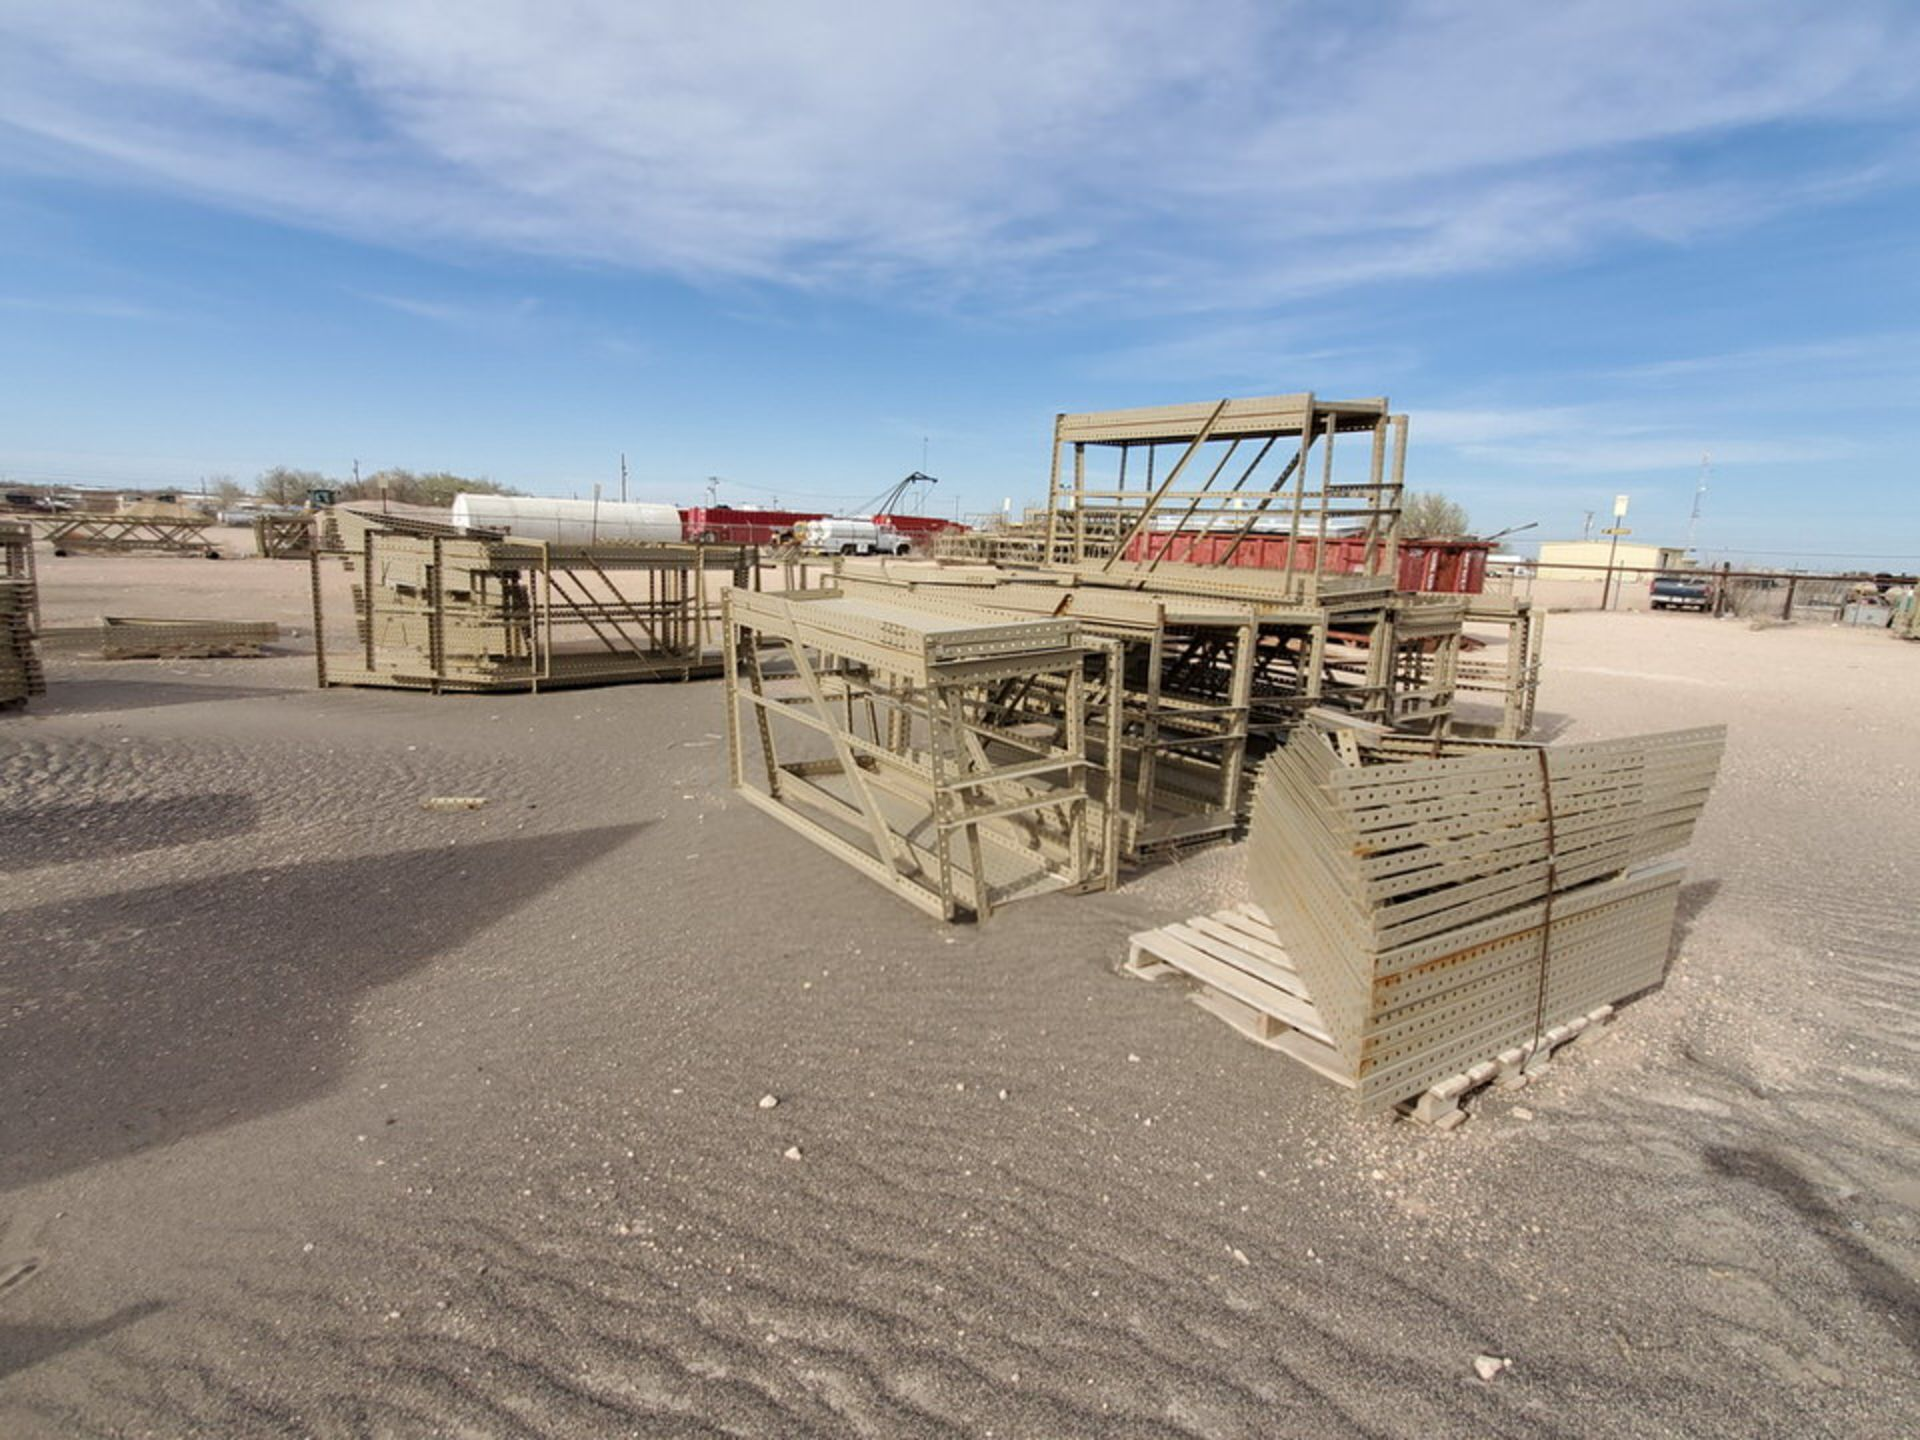 Disassembled Catwalk Sections - Image 5 of 20